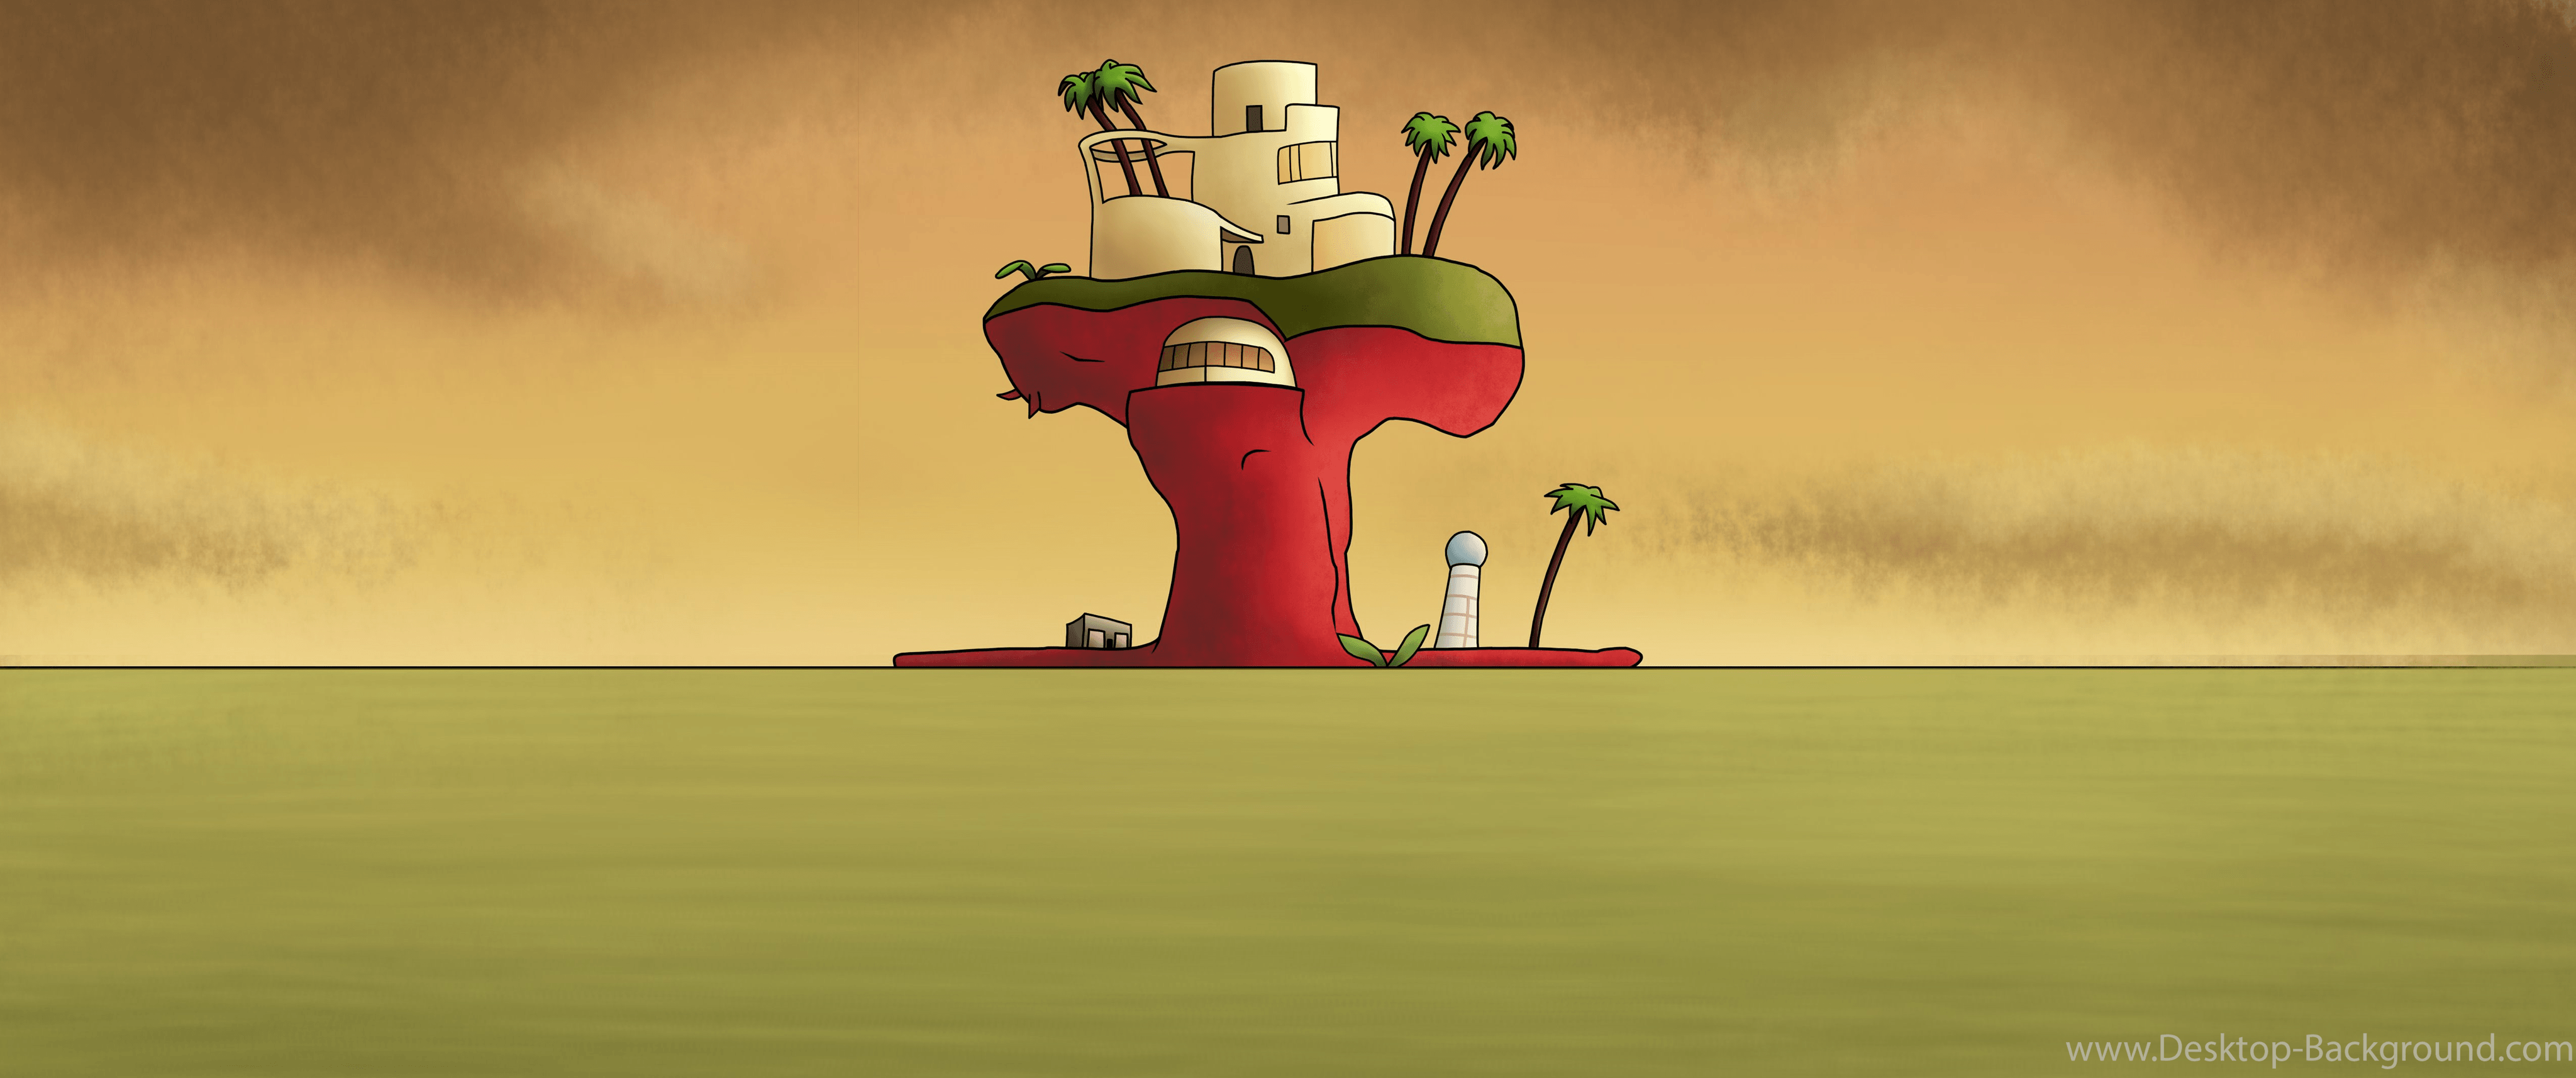 Plastic Beach Wallpapers